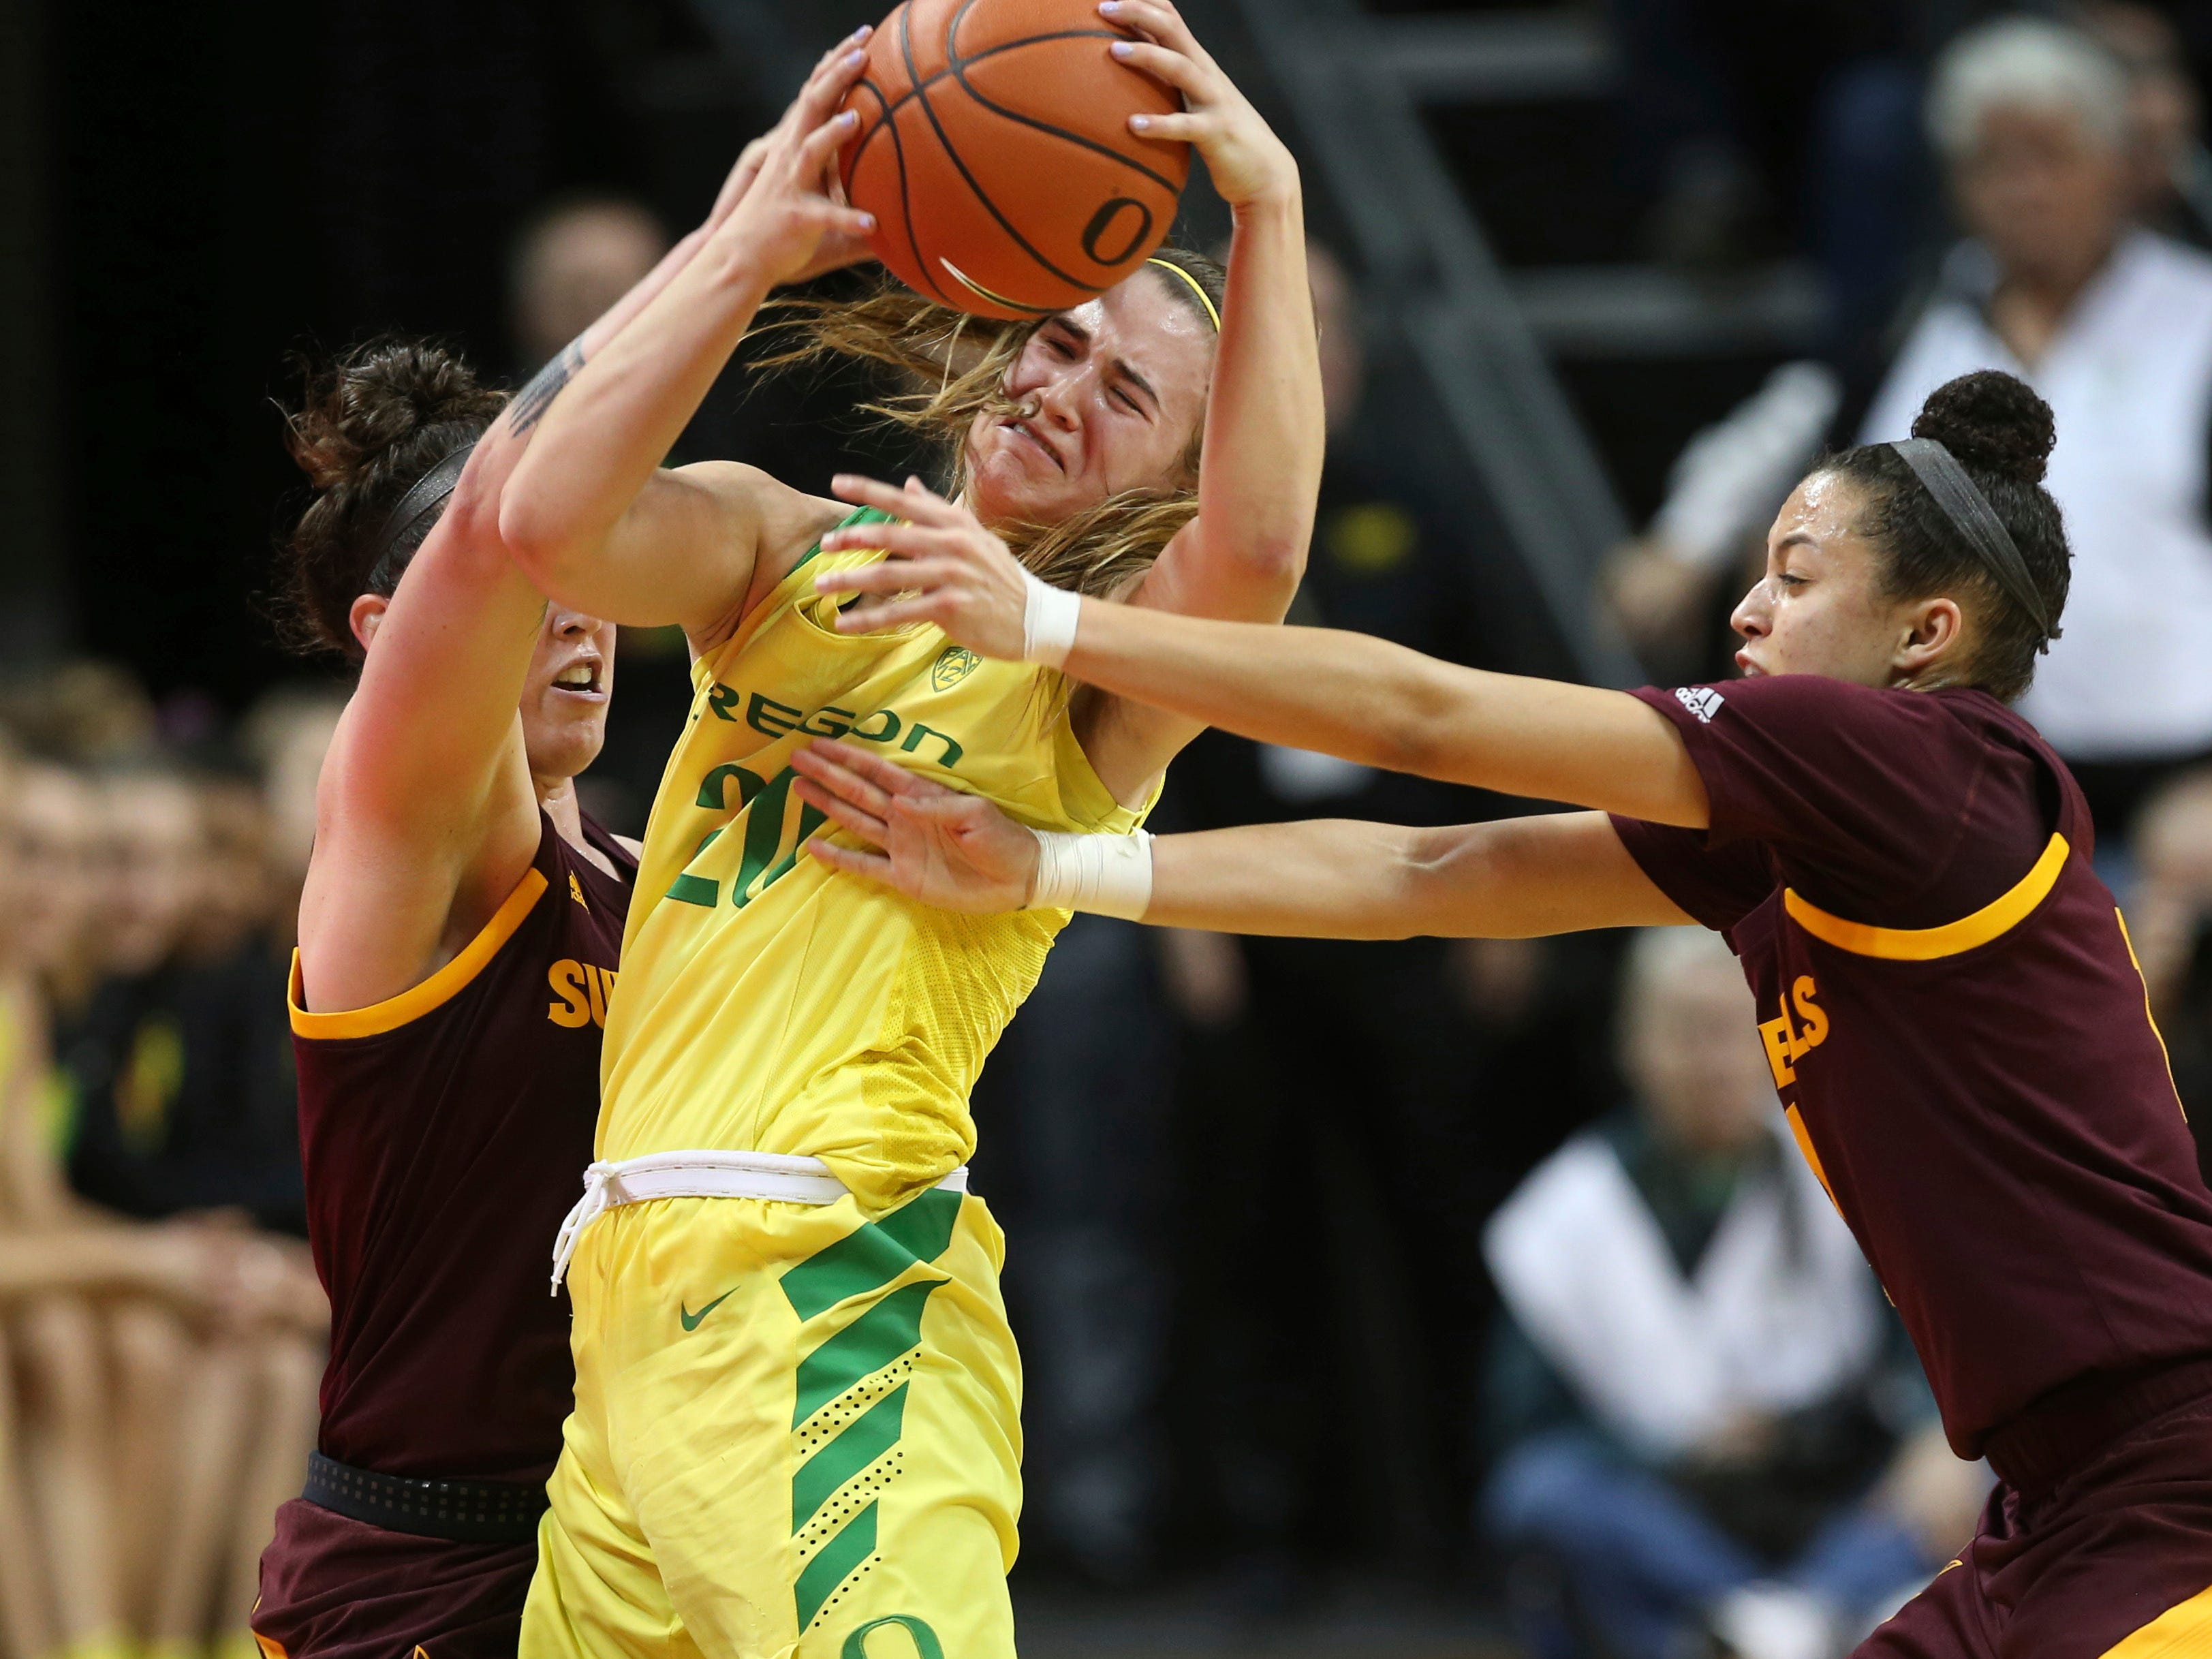 Arizona State's Robbi Ryan, left, and Reili Richardson, right, defend against Oregon's Sabrina Ionescu near the end of an NCAA college basketball game Friday, Jan 18, 2019, in Eugene, Ore. Ionescu was fouled on the play. (AP Photo/Chris Pietsch)